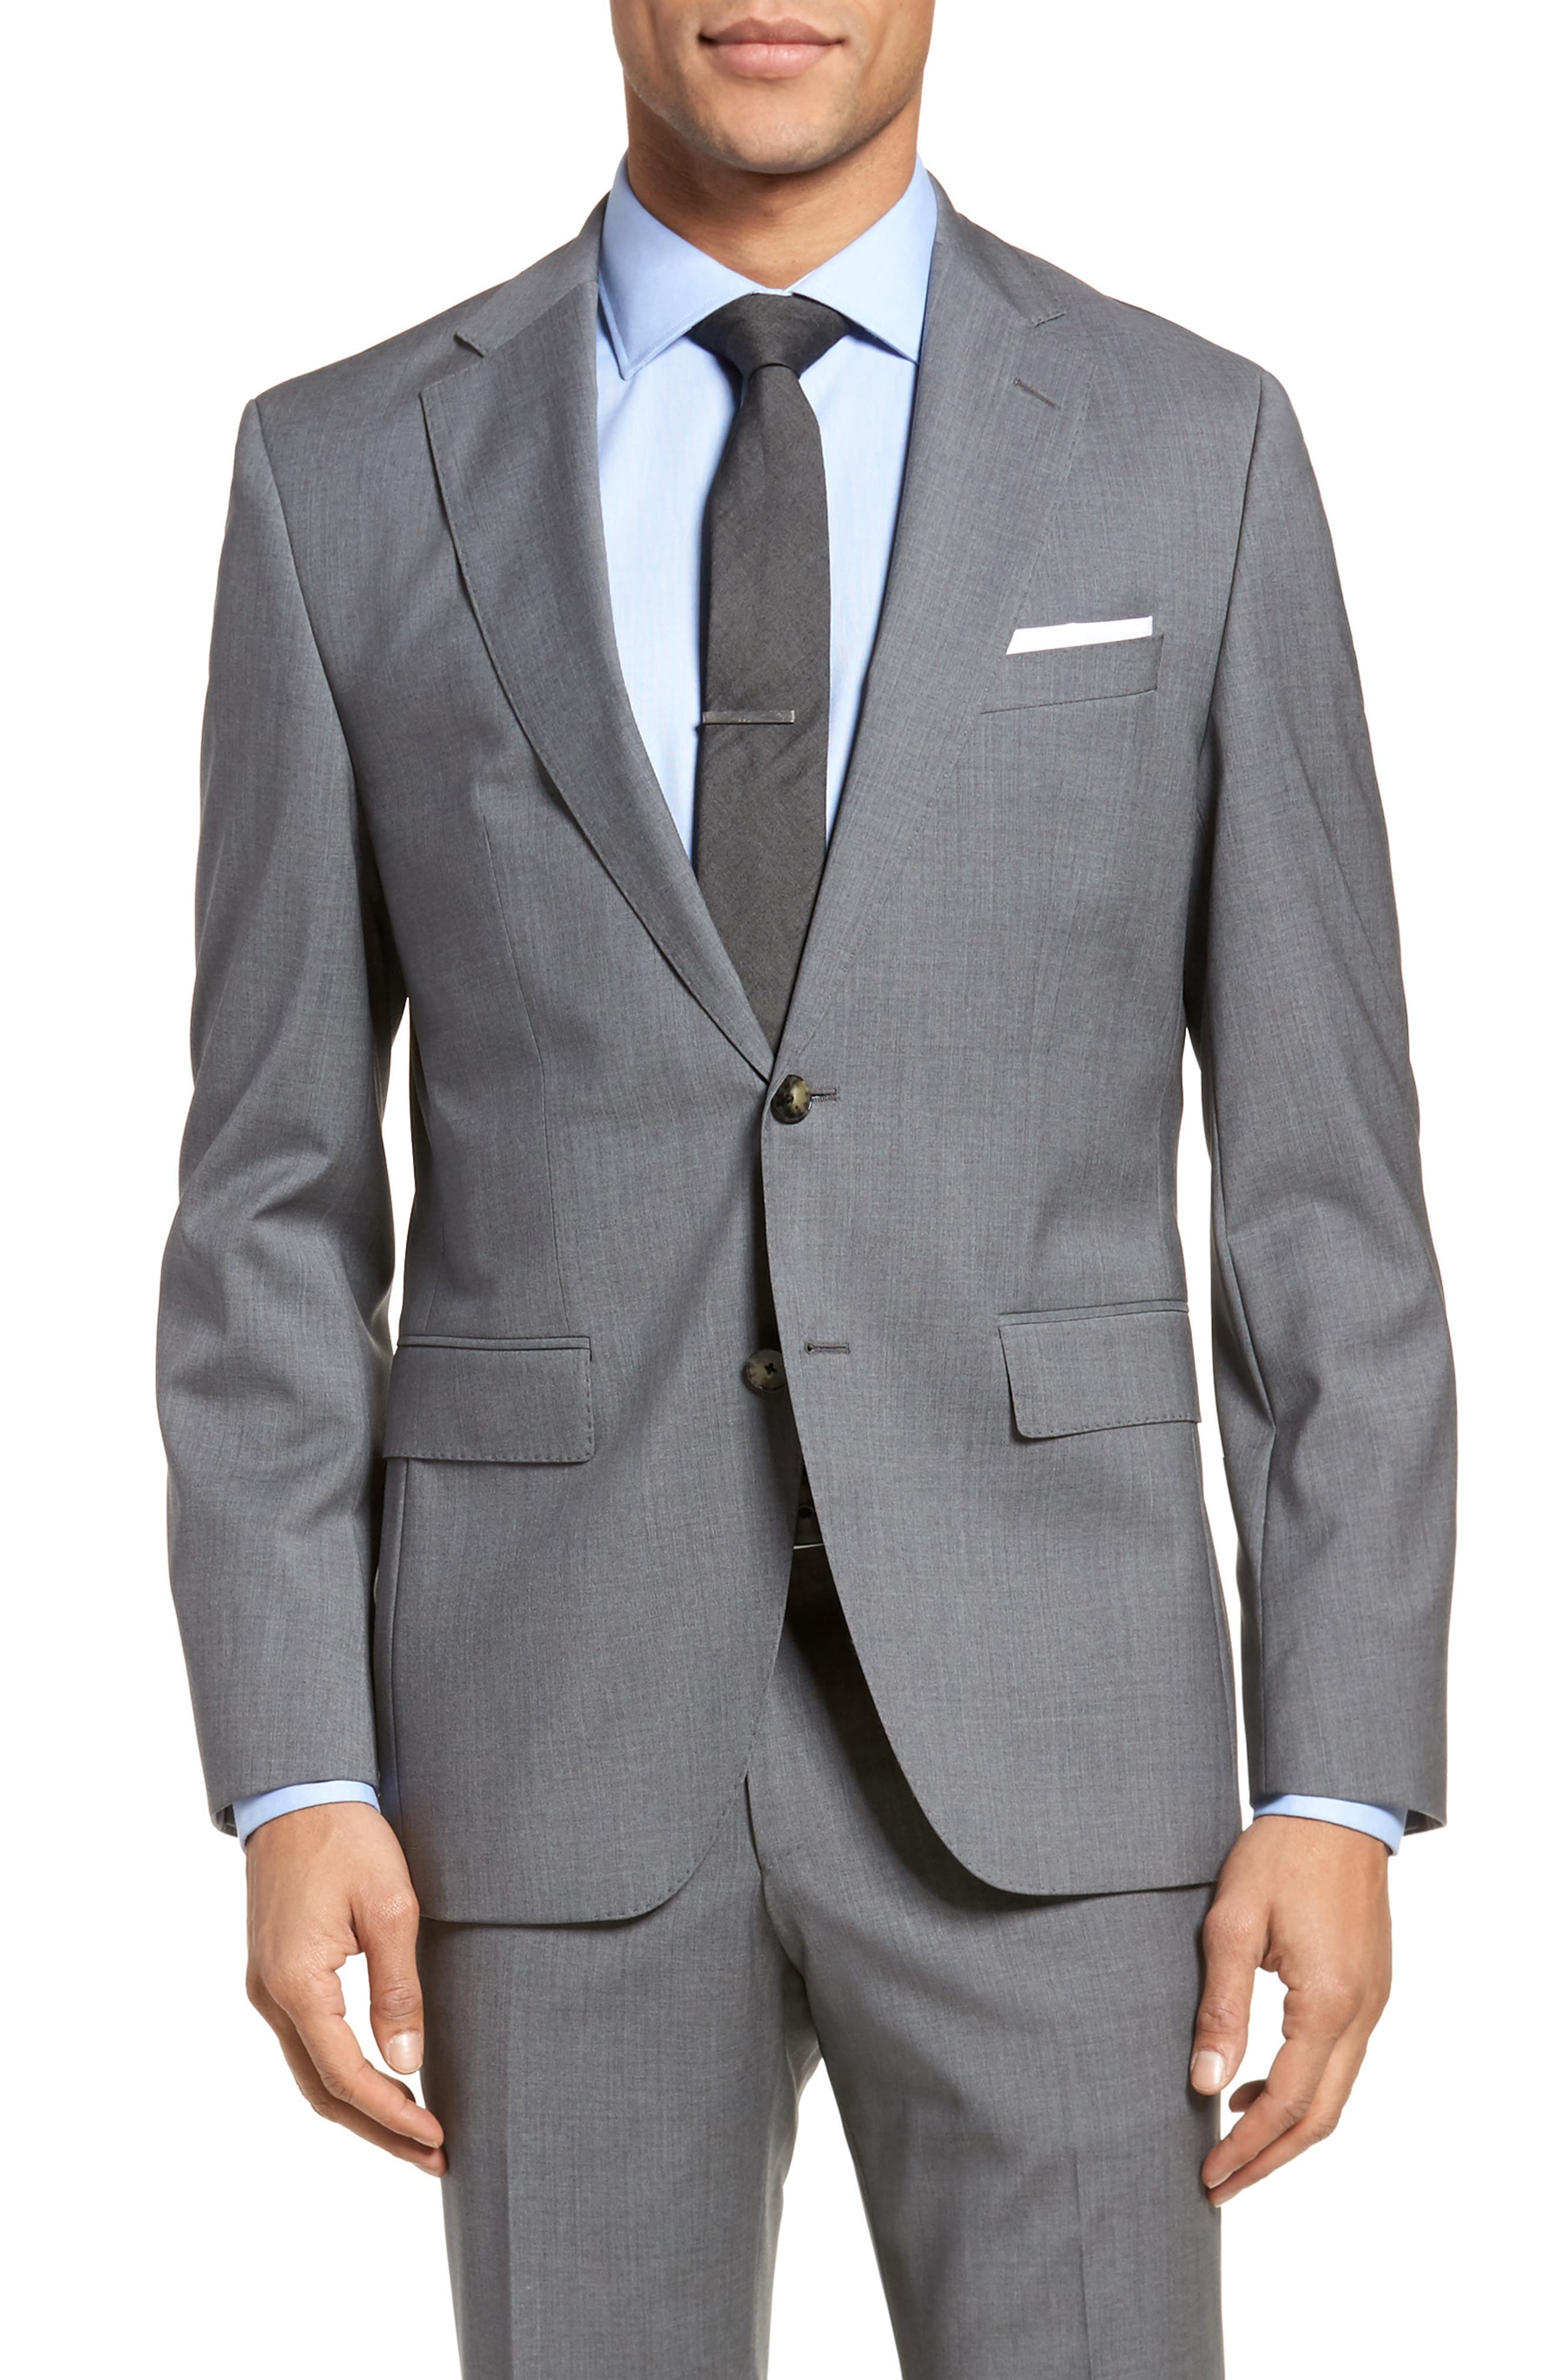 Johnstons/Lenon Classic Fit Solid Wool Suit,                             Alternate thumbnail 5, color,                             Medium Grey